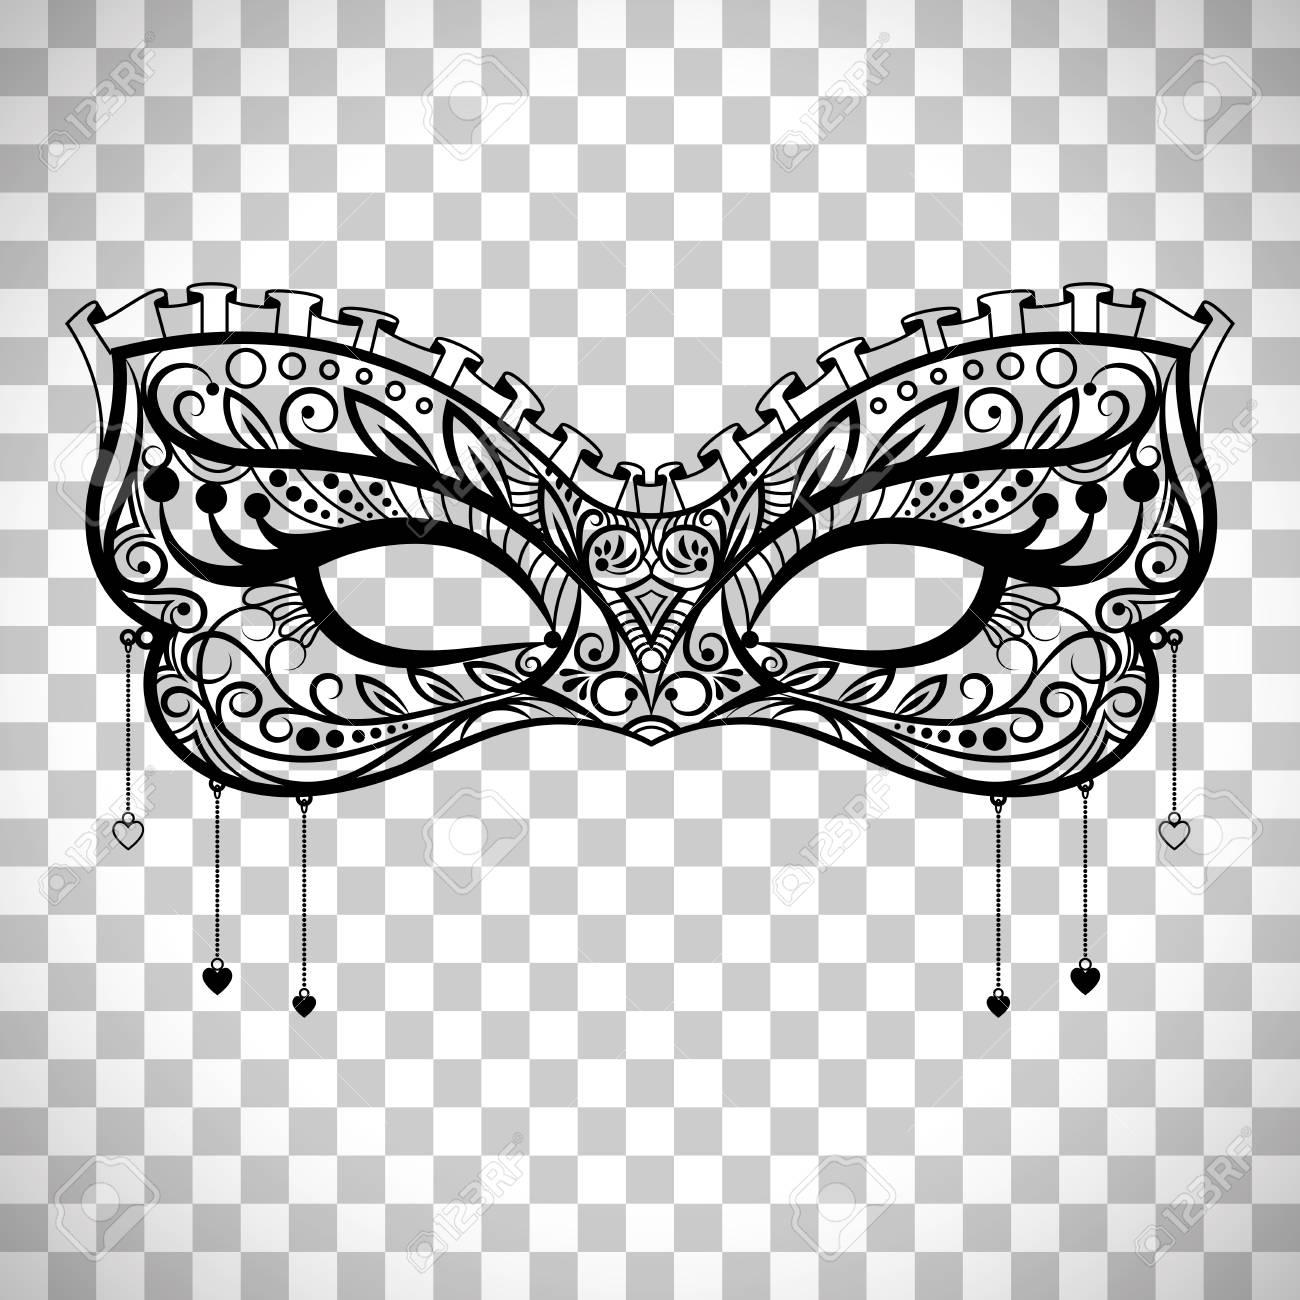 Elegant Carnival Mask Black Ornate Lace Masquerade Vector Isolated On Transparent Background Stock